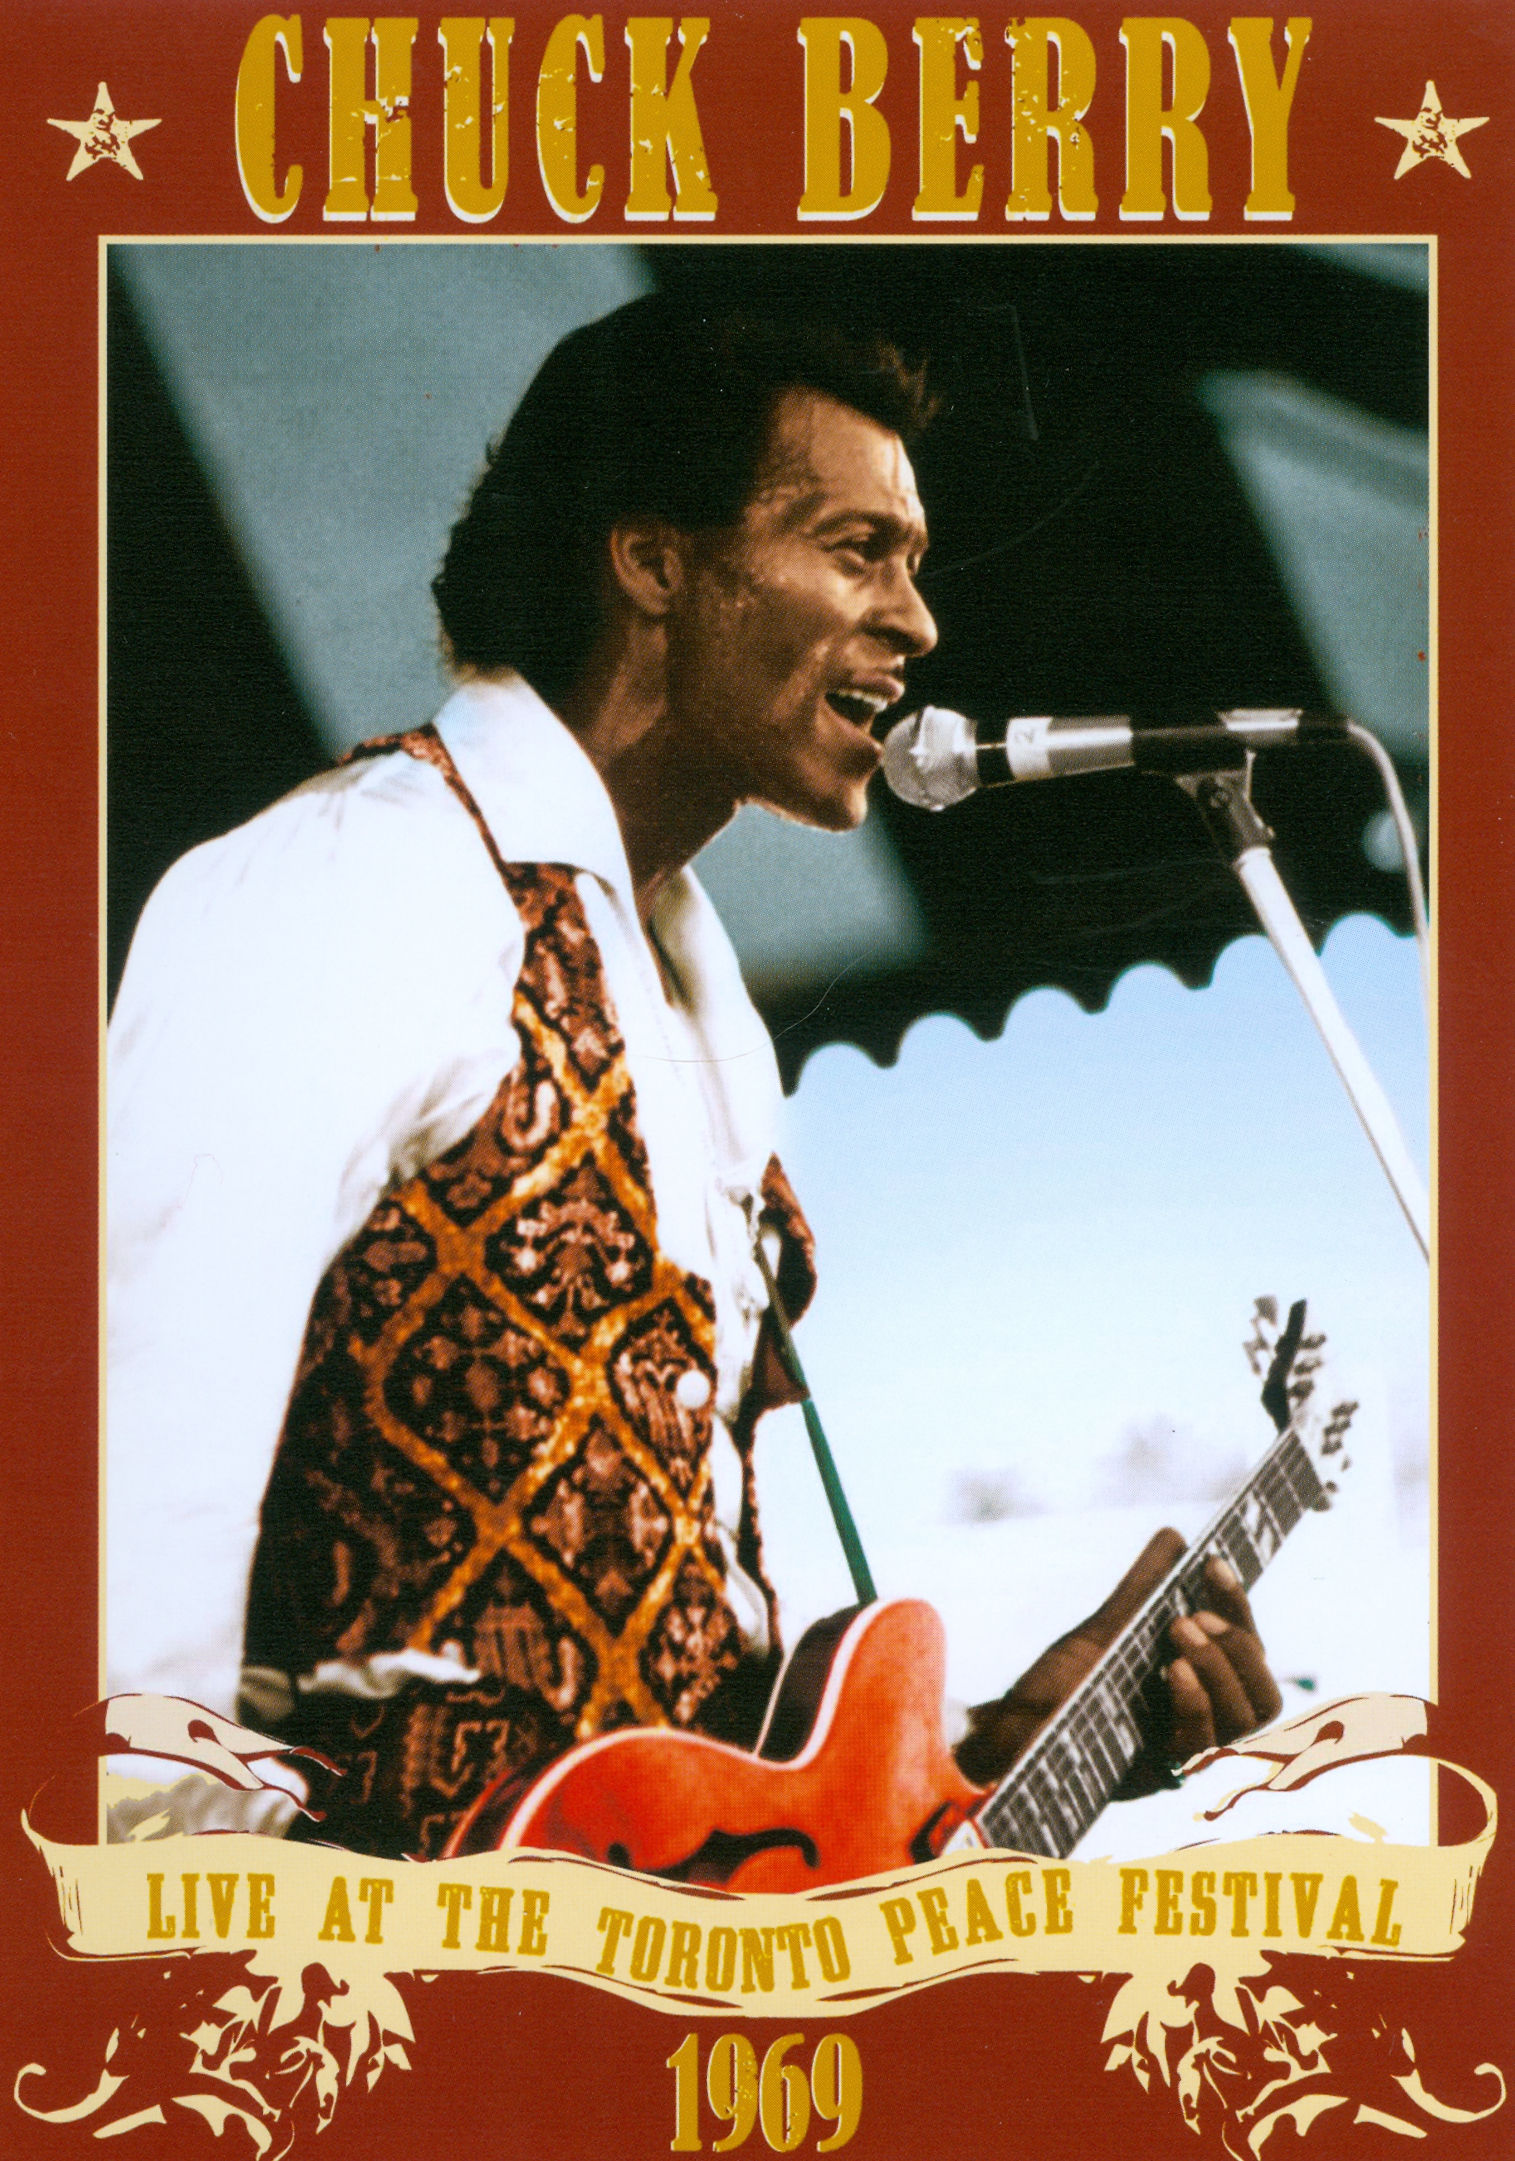 Chuck Berry: Live at the Toronto Peace Festival 1969